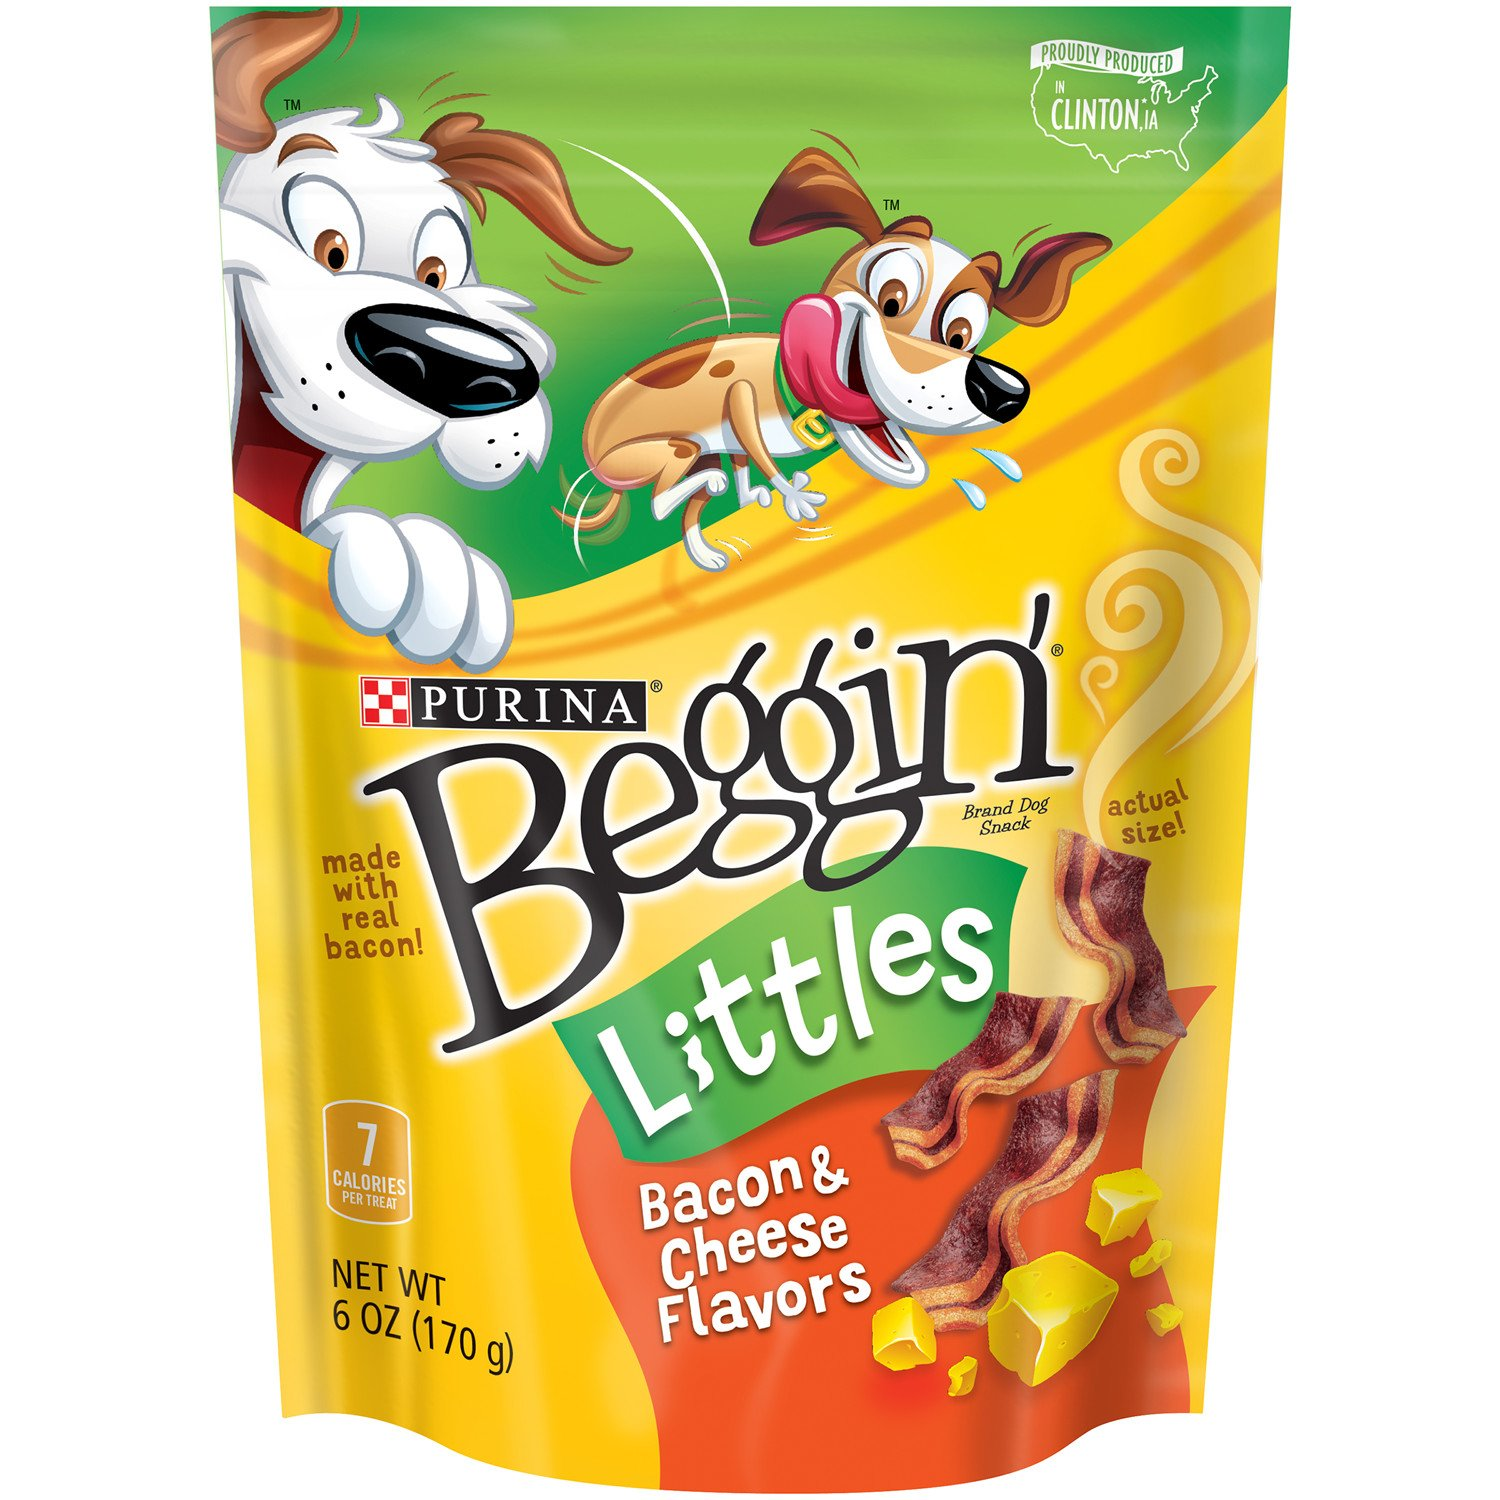 Purina Beggin' Littles Bacon and Cheese Dog Treats 6 oz. Pouch - Pack of 6